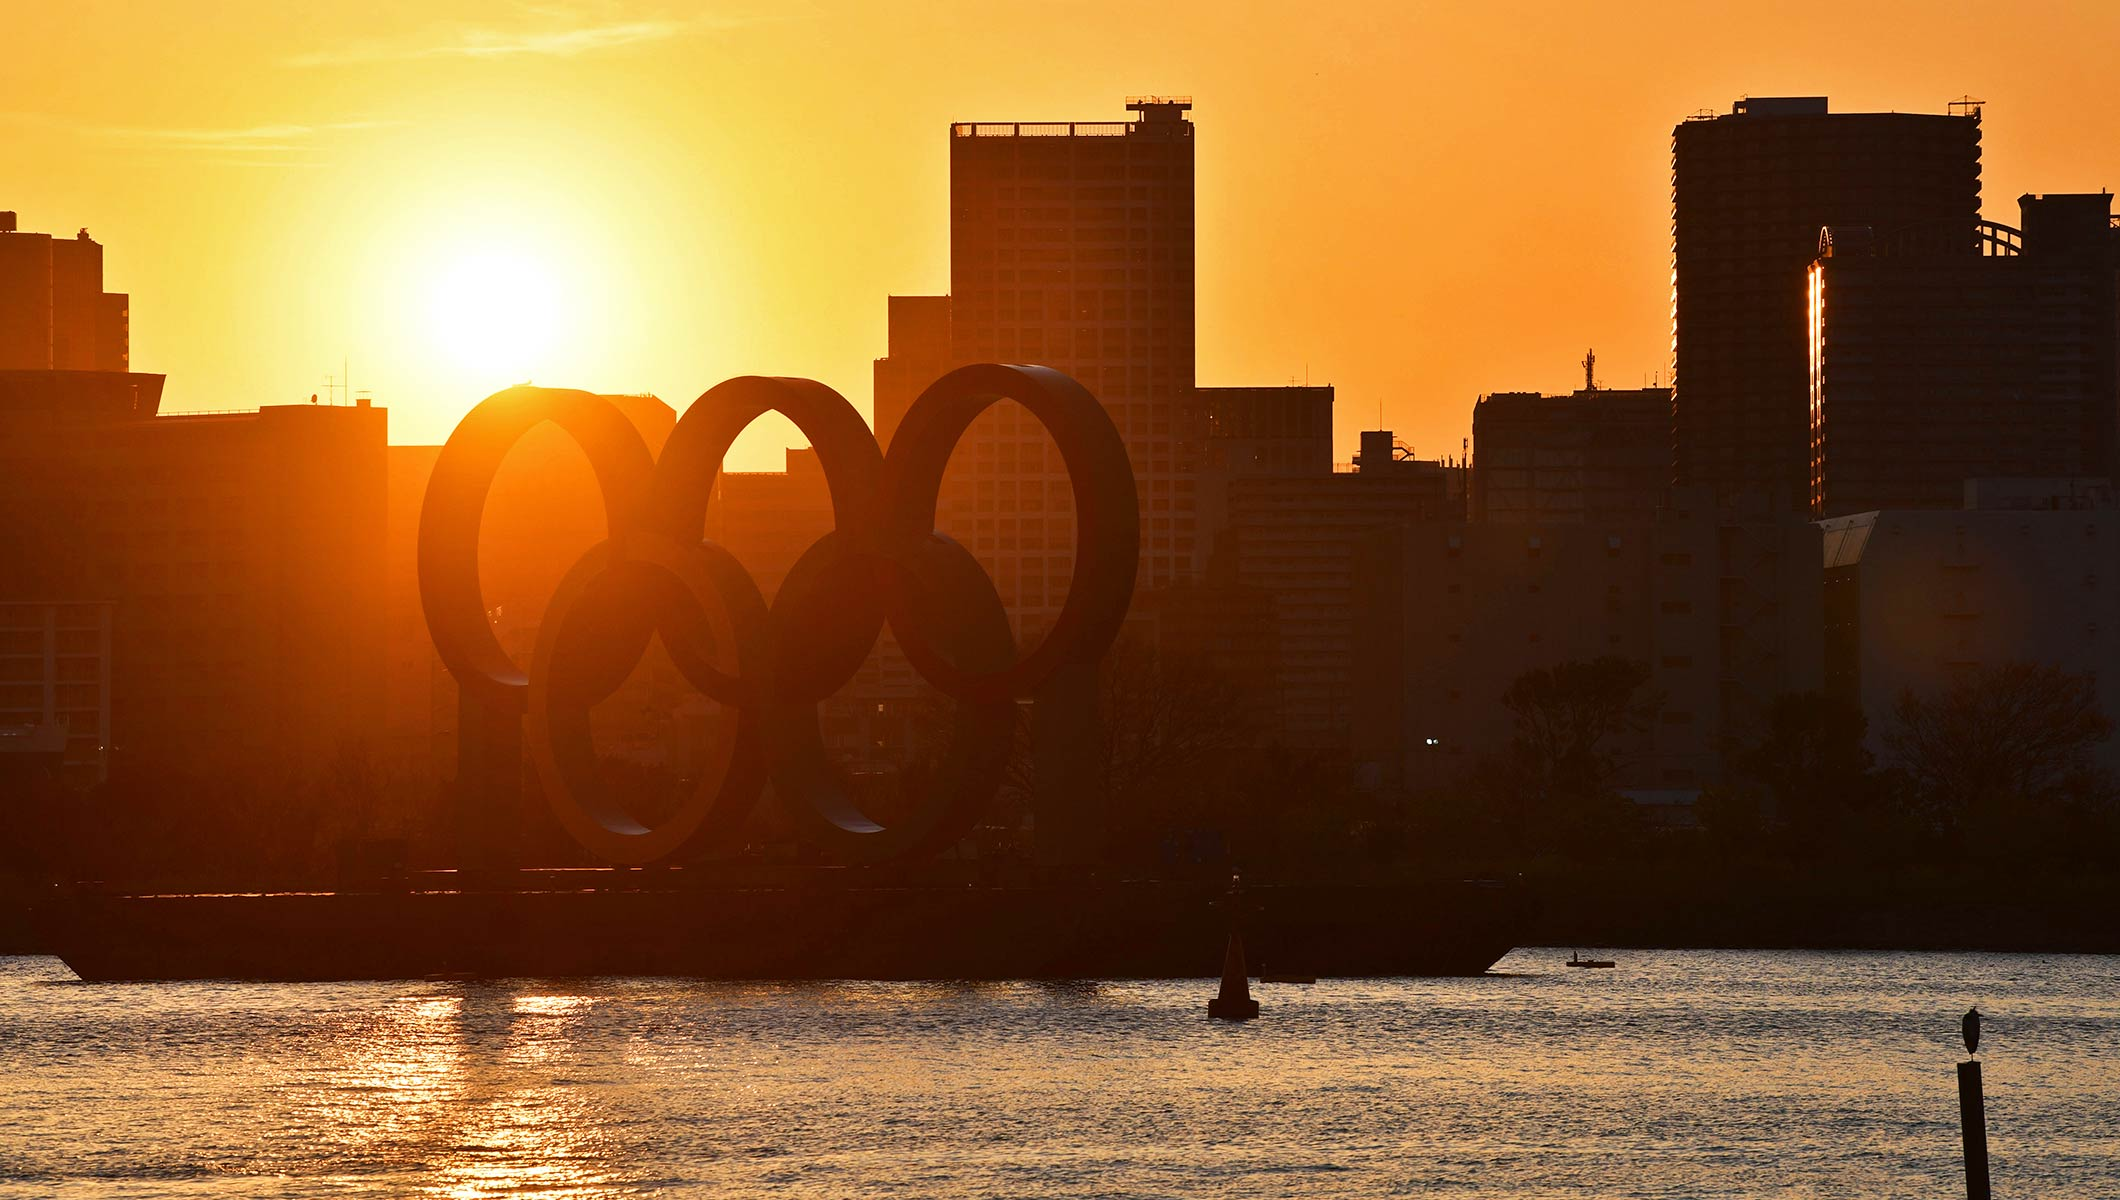 Team spirit evident in delivery of Tokyo 2020 in 2021   Olympic News